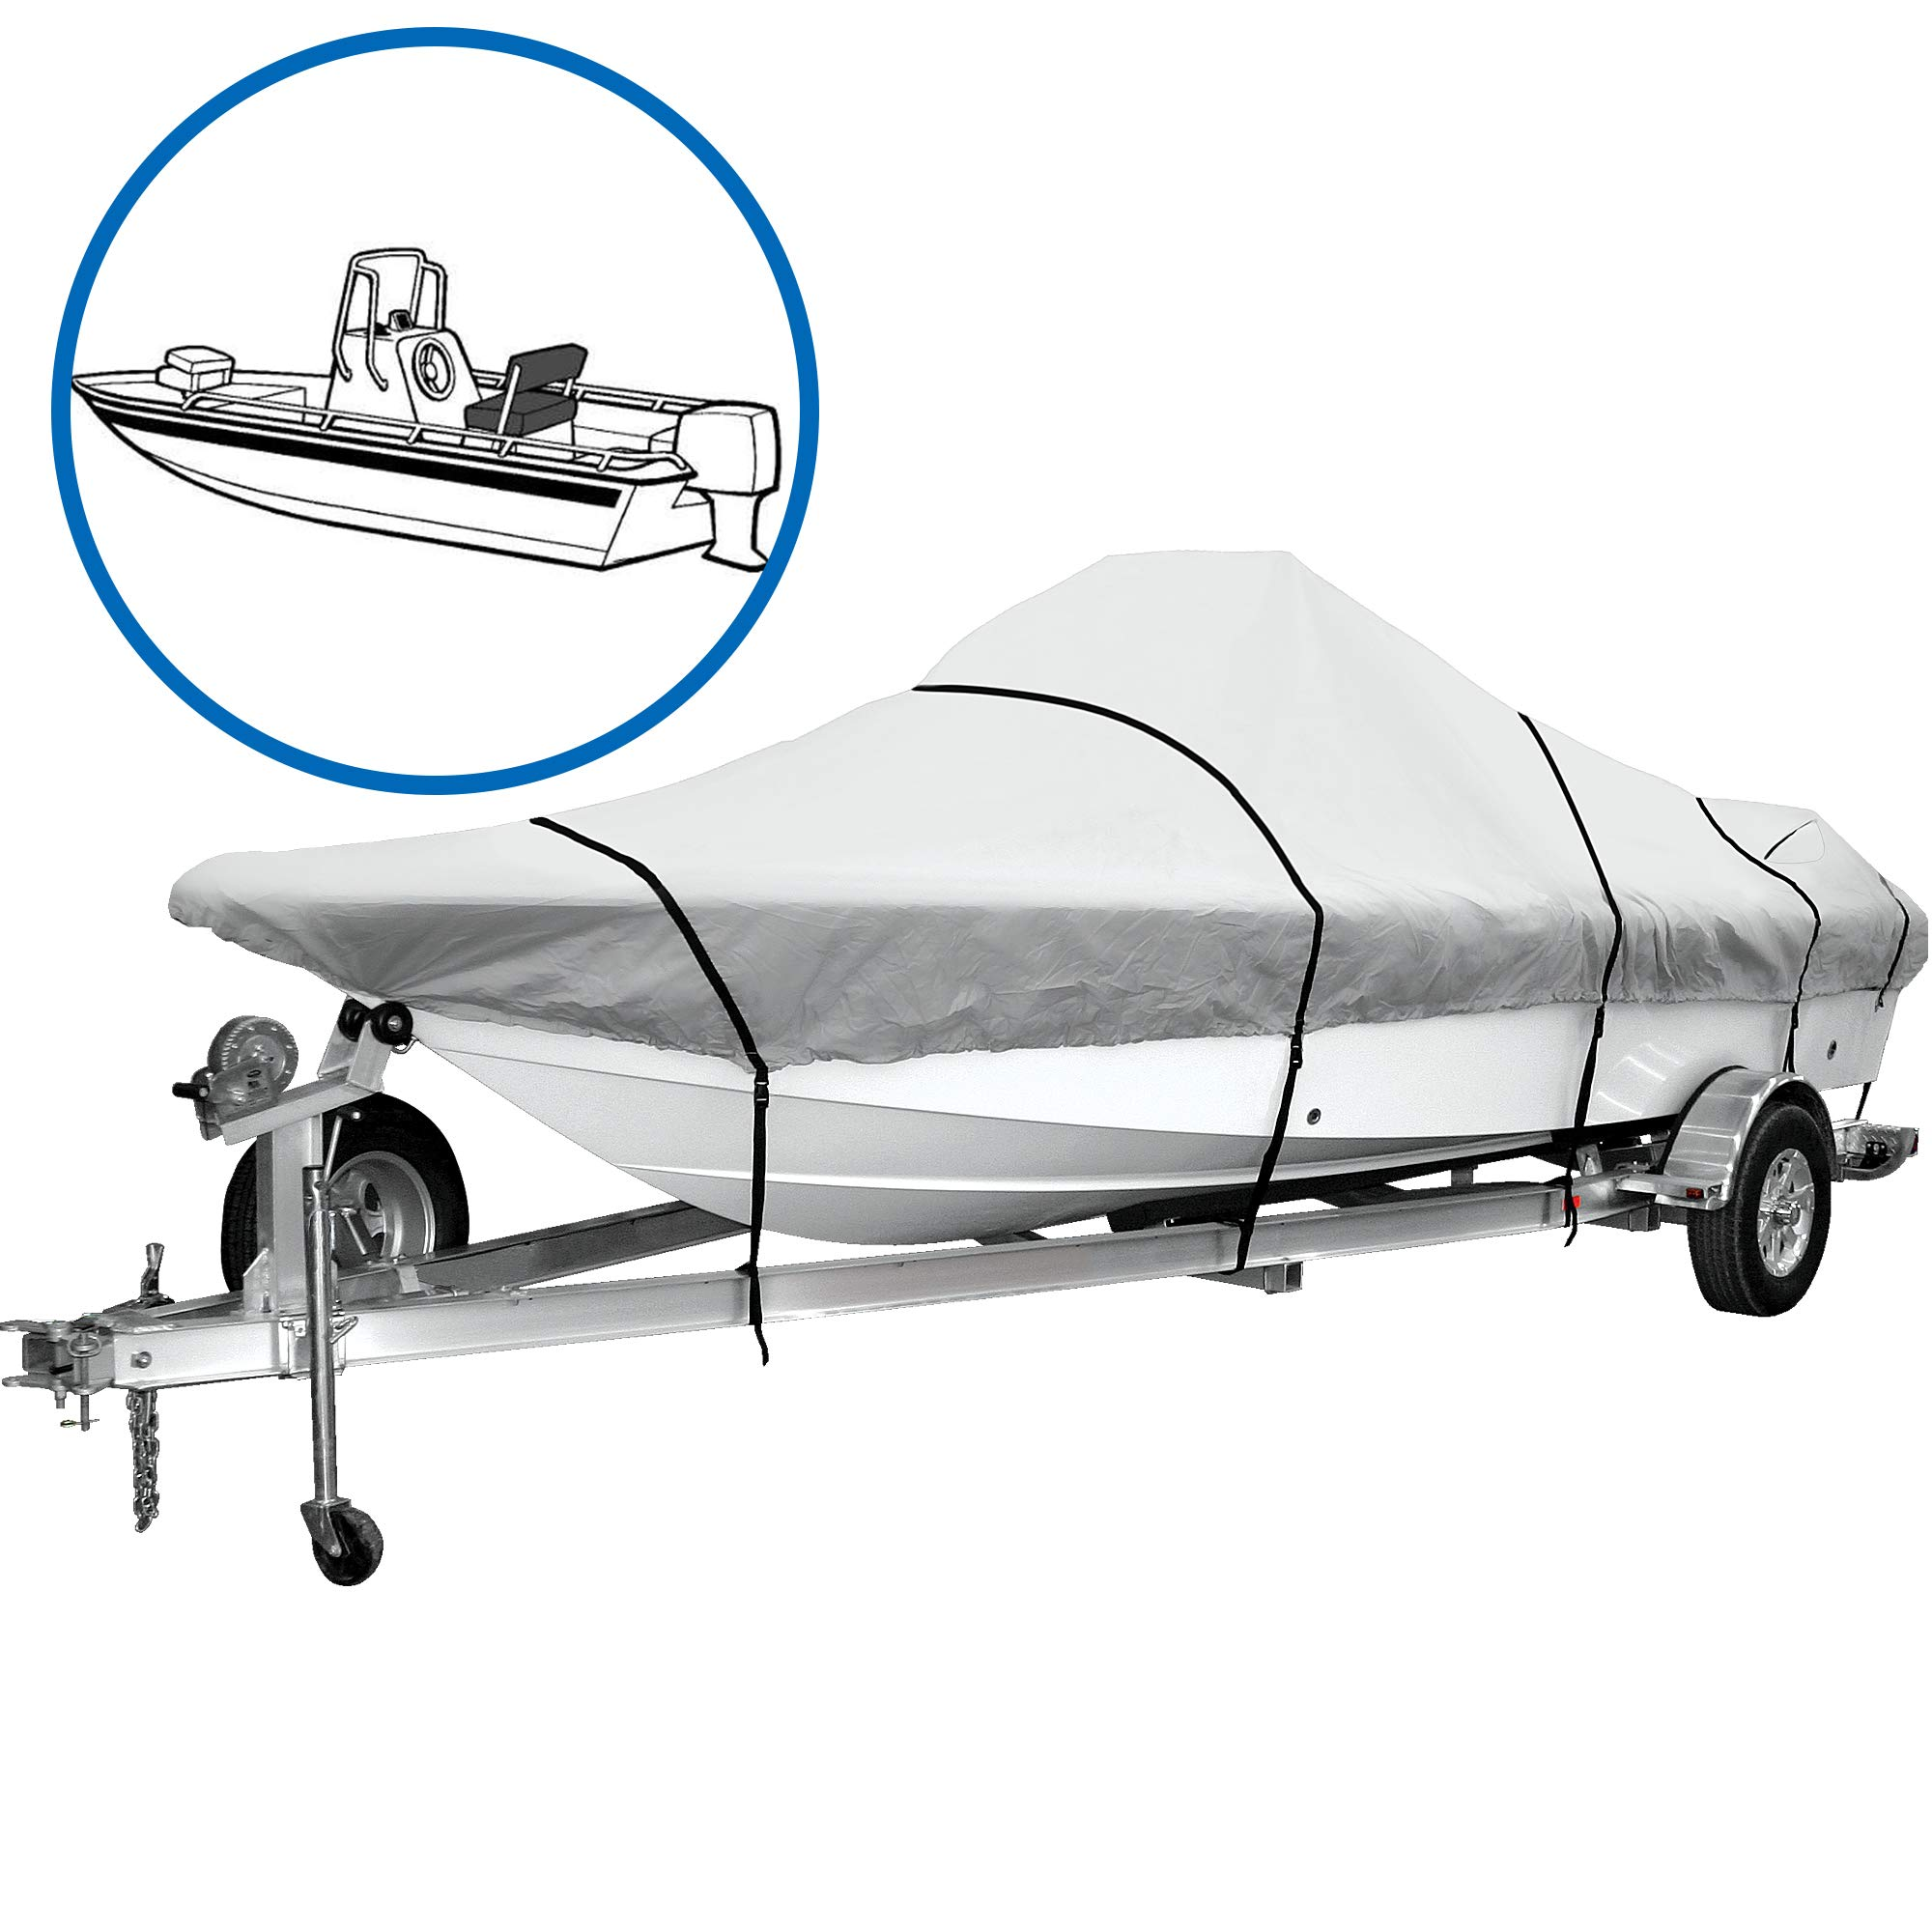 iCOVER Water Proof Heavy Duty Trailerable Boat Cover,Fits V-Hull Center Console Boat 17ft-19ft Long and Beam Width up to 96in, Windshield Height up to 30in,Grey Color, B7302A by i COVER